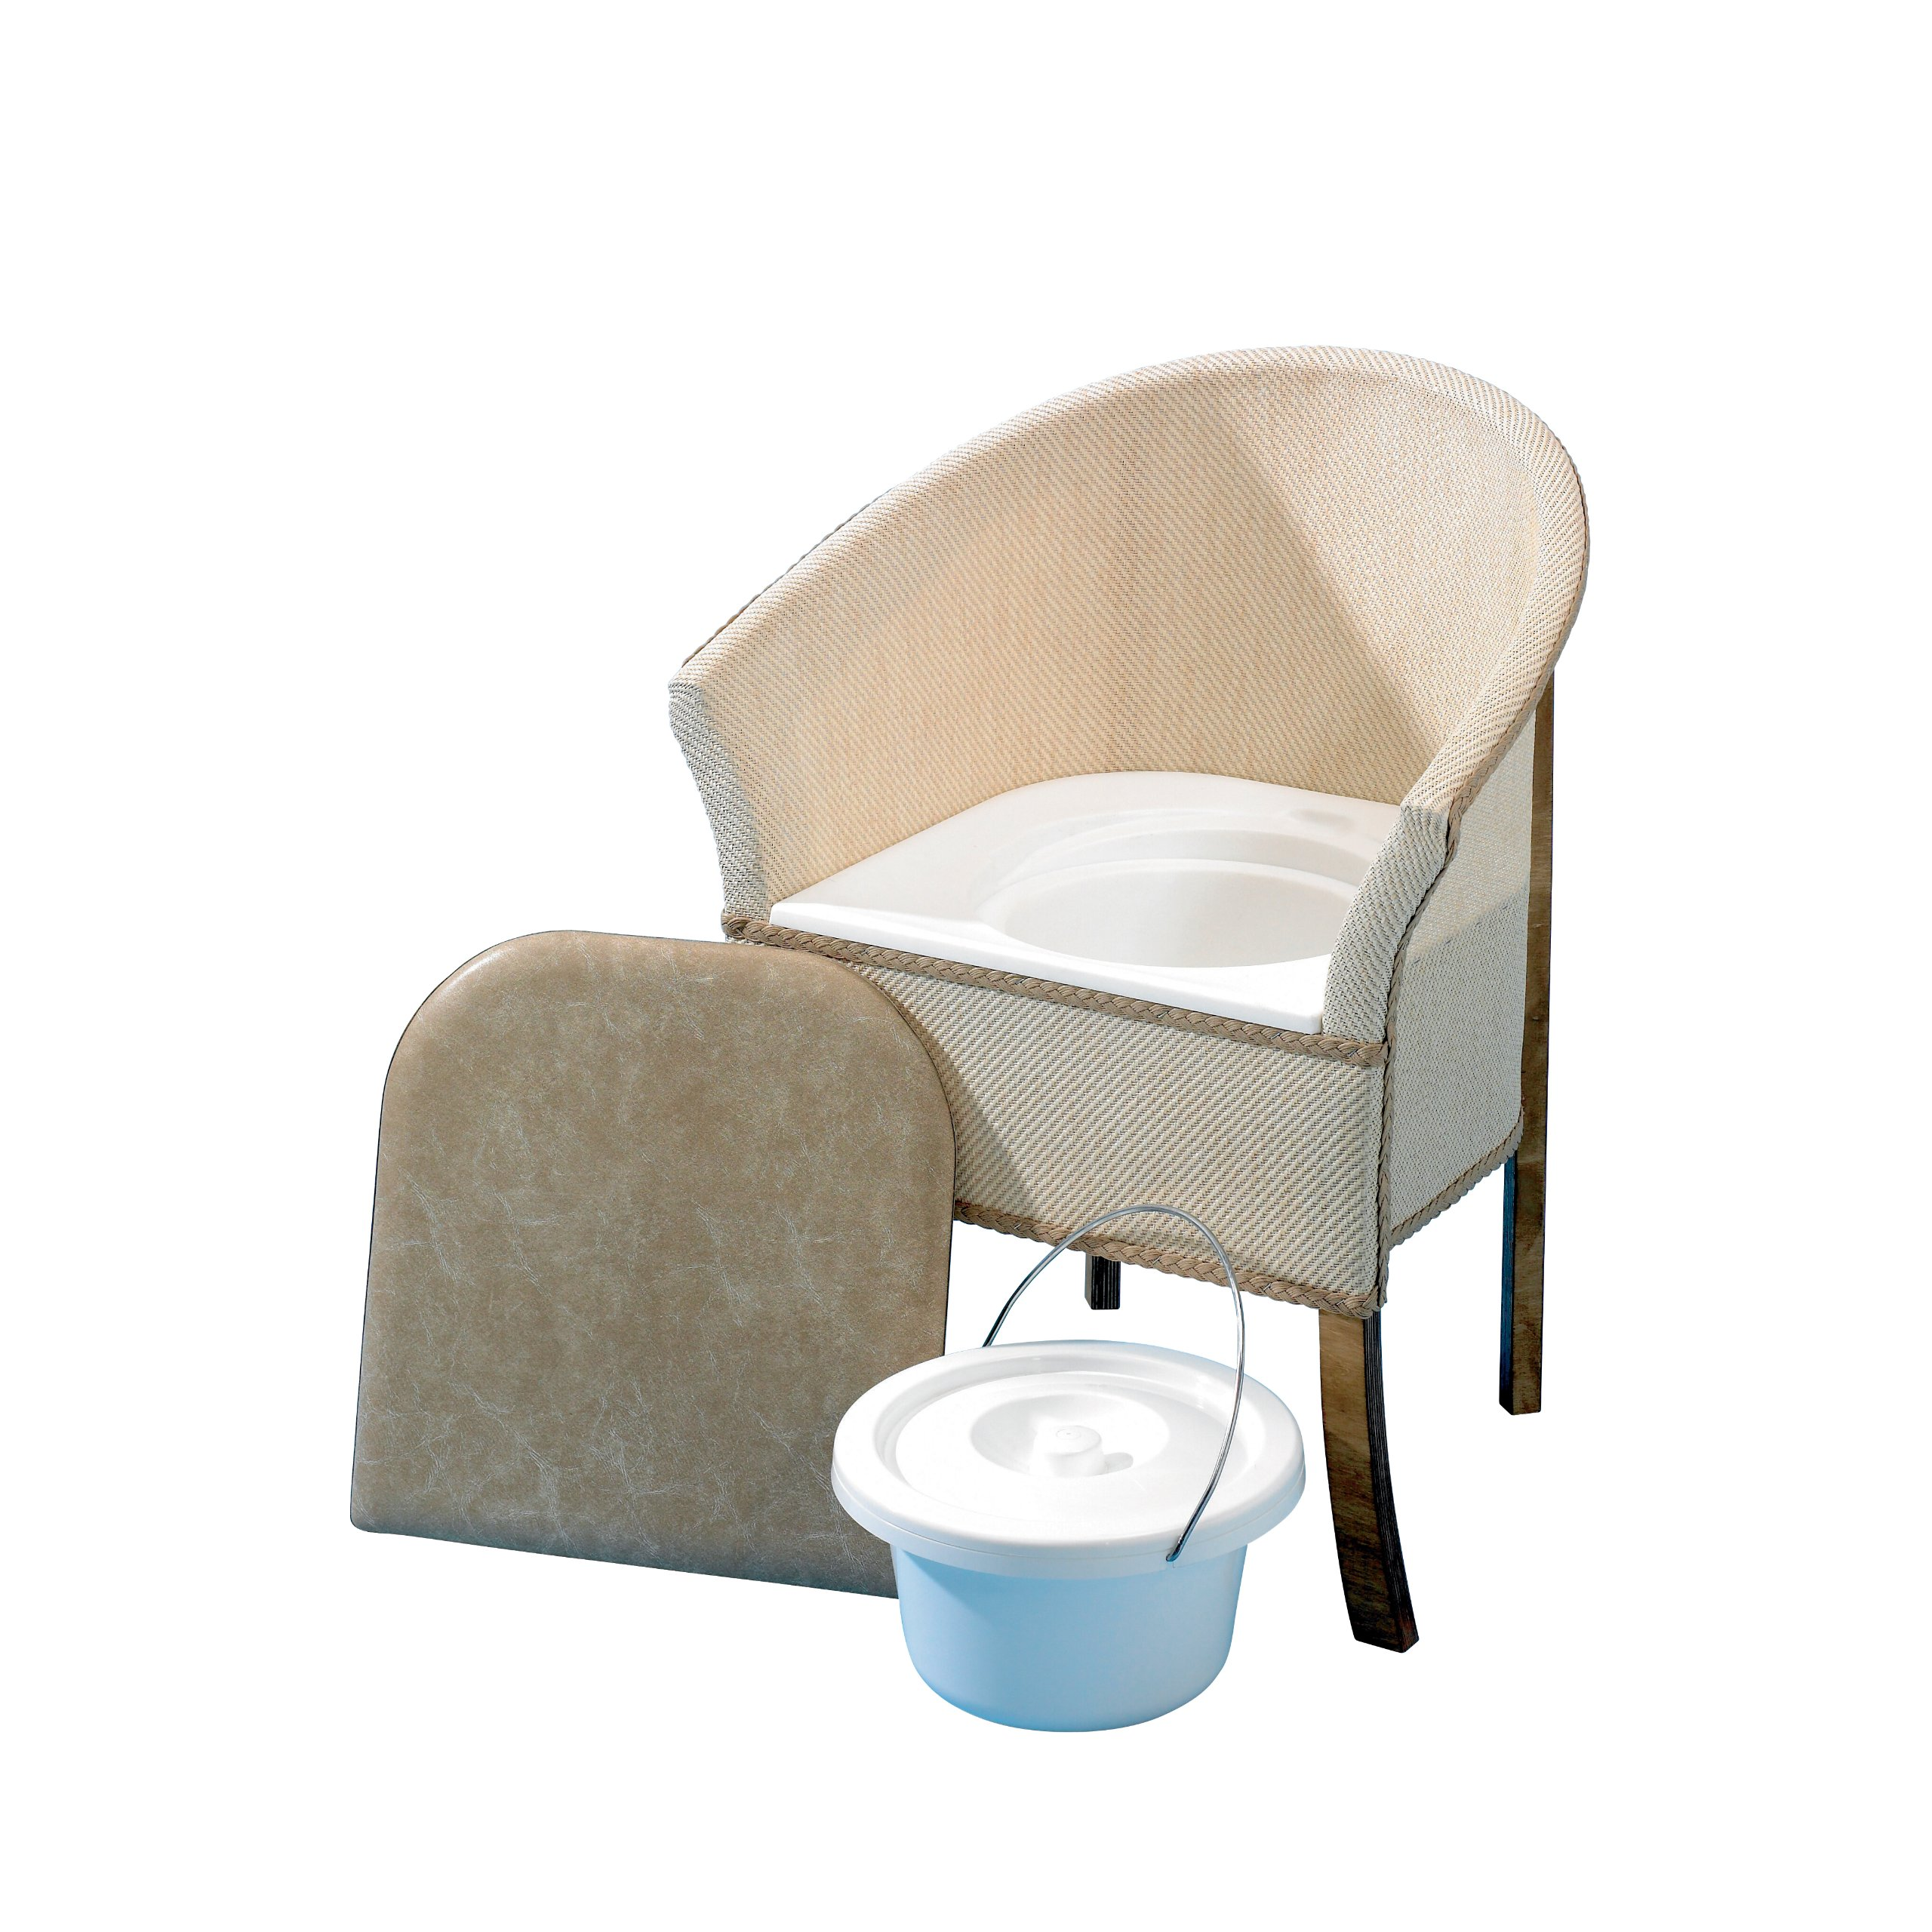 Homecraft Bedroom Commode, Bedroom Toilet Chair with Built In Commode Seat, Convenient Bathroom Access, Ergonomic Shape for Comfort